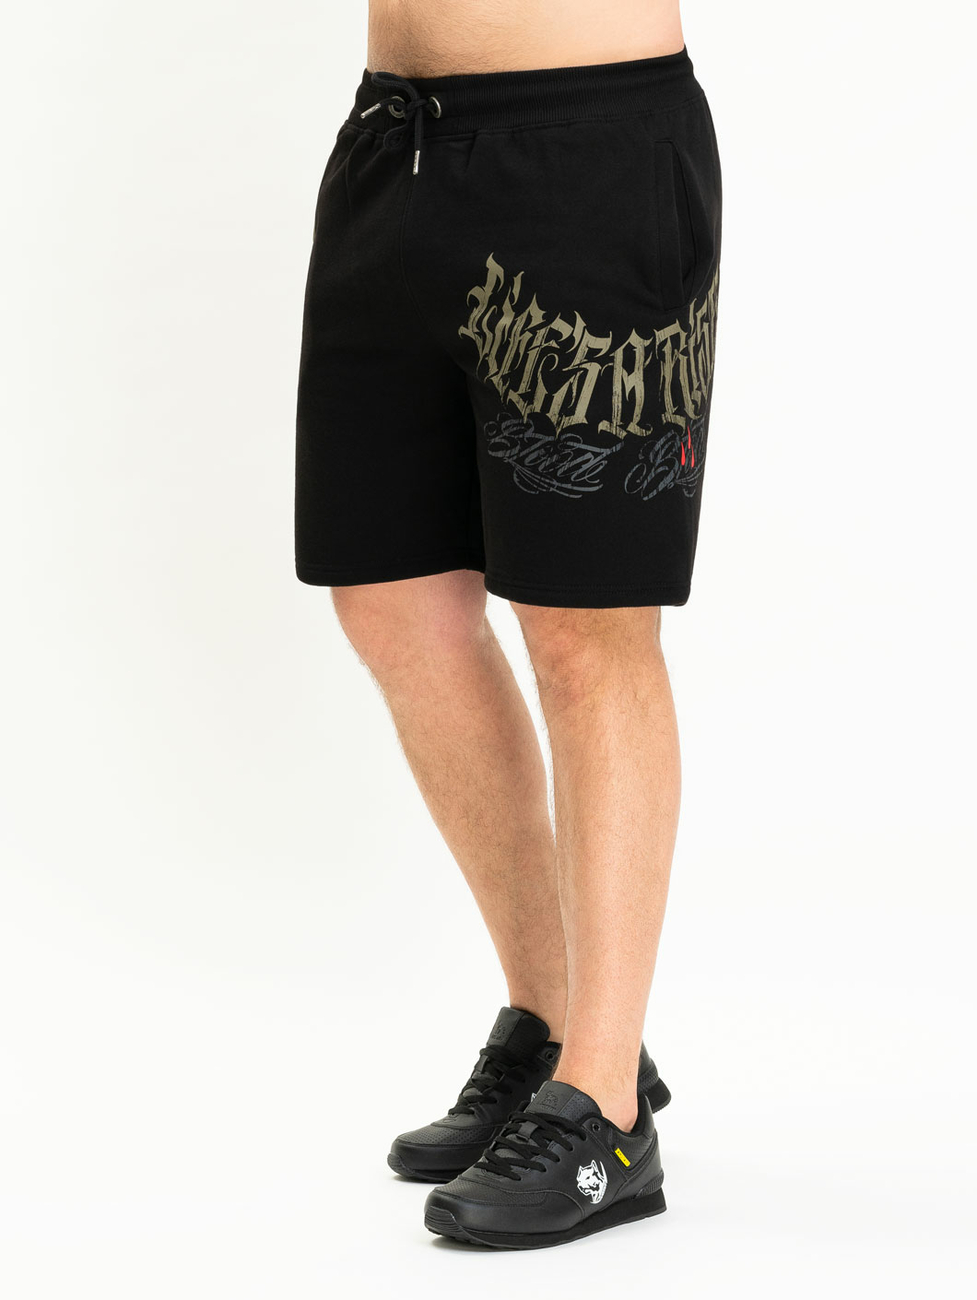 Blood In Blood Out Miembros Sweatshorts M